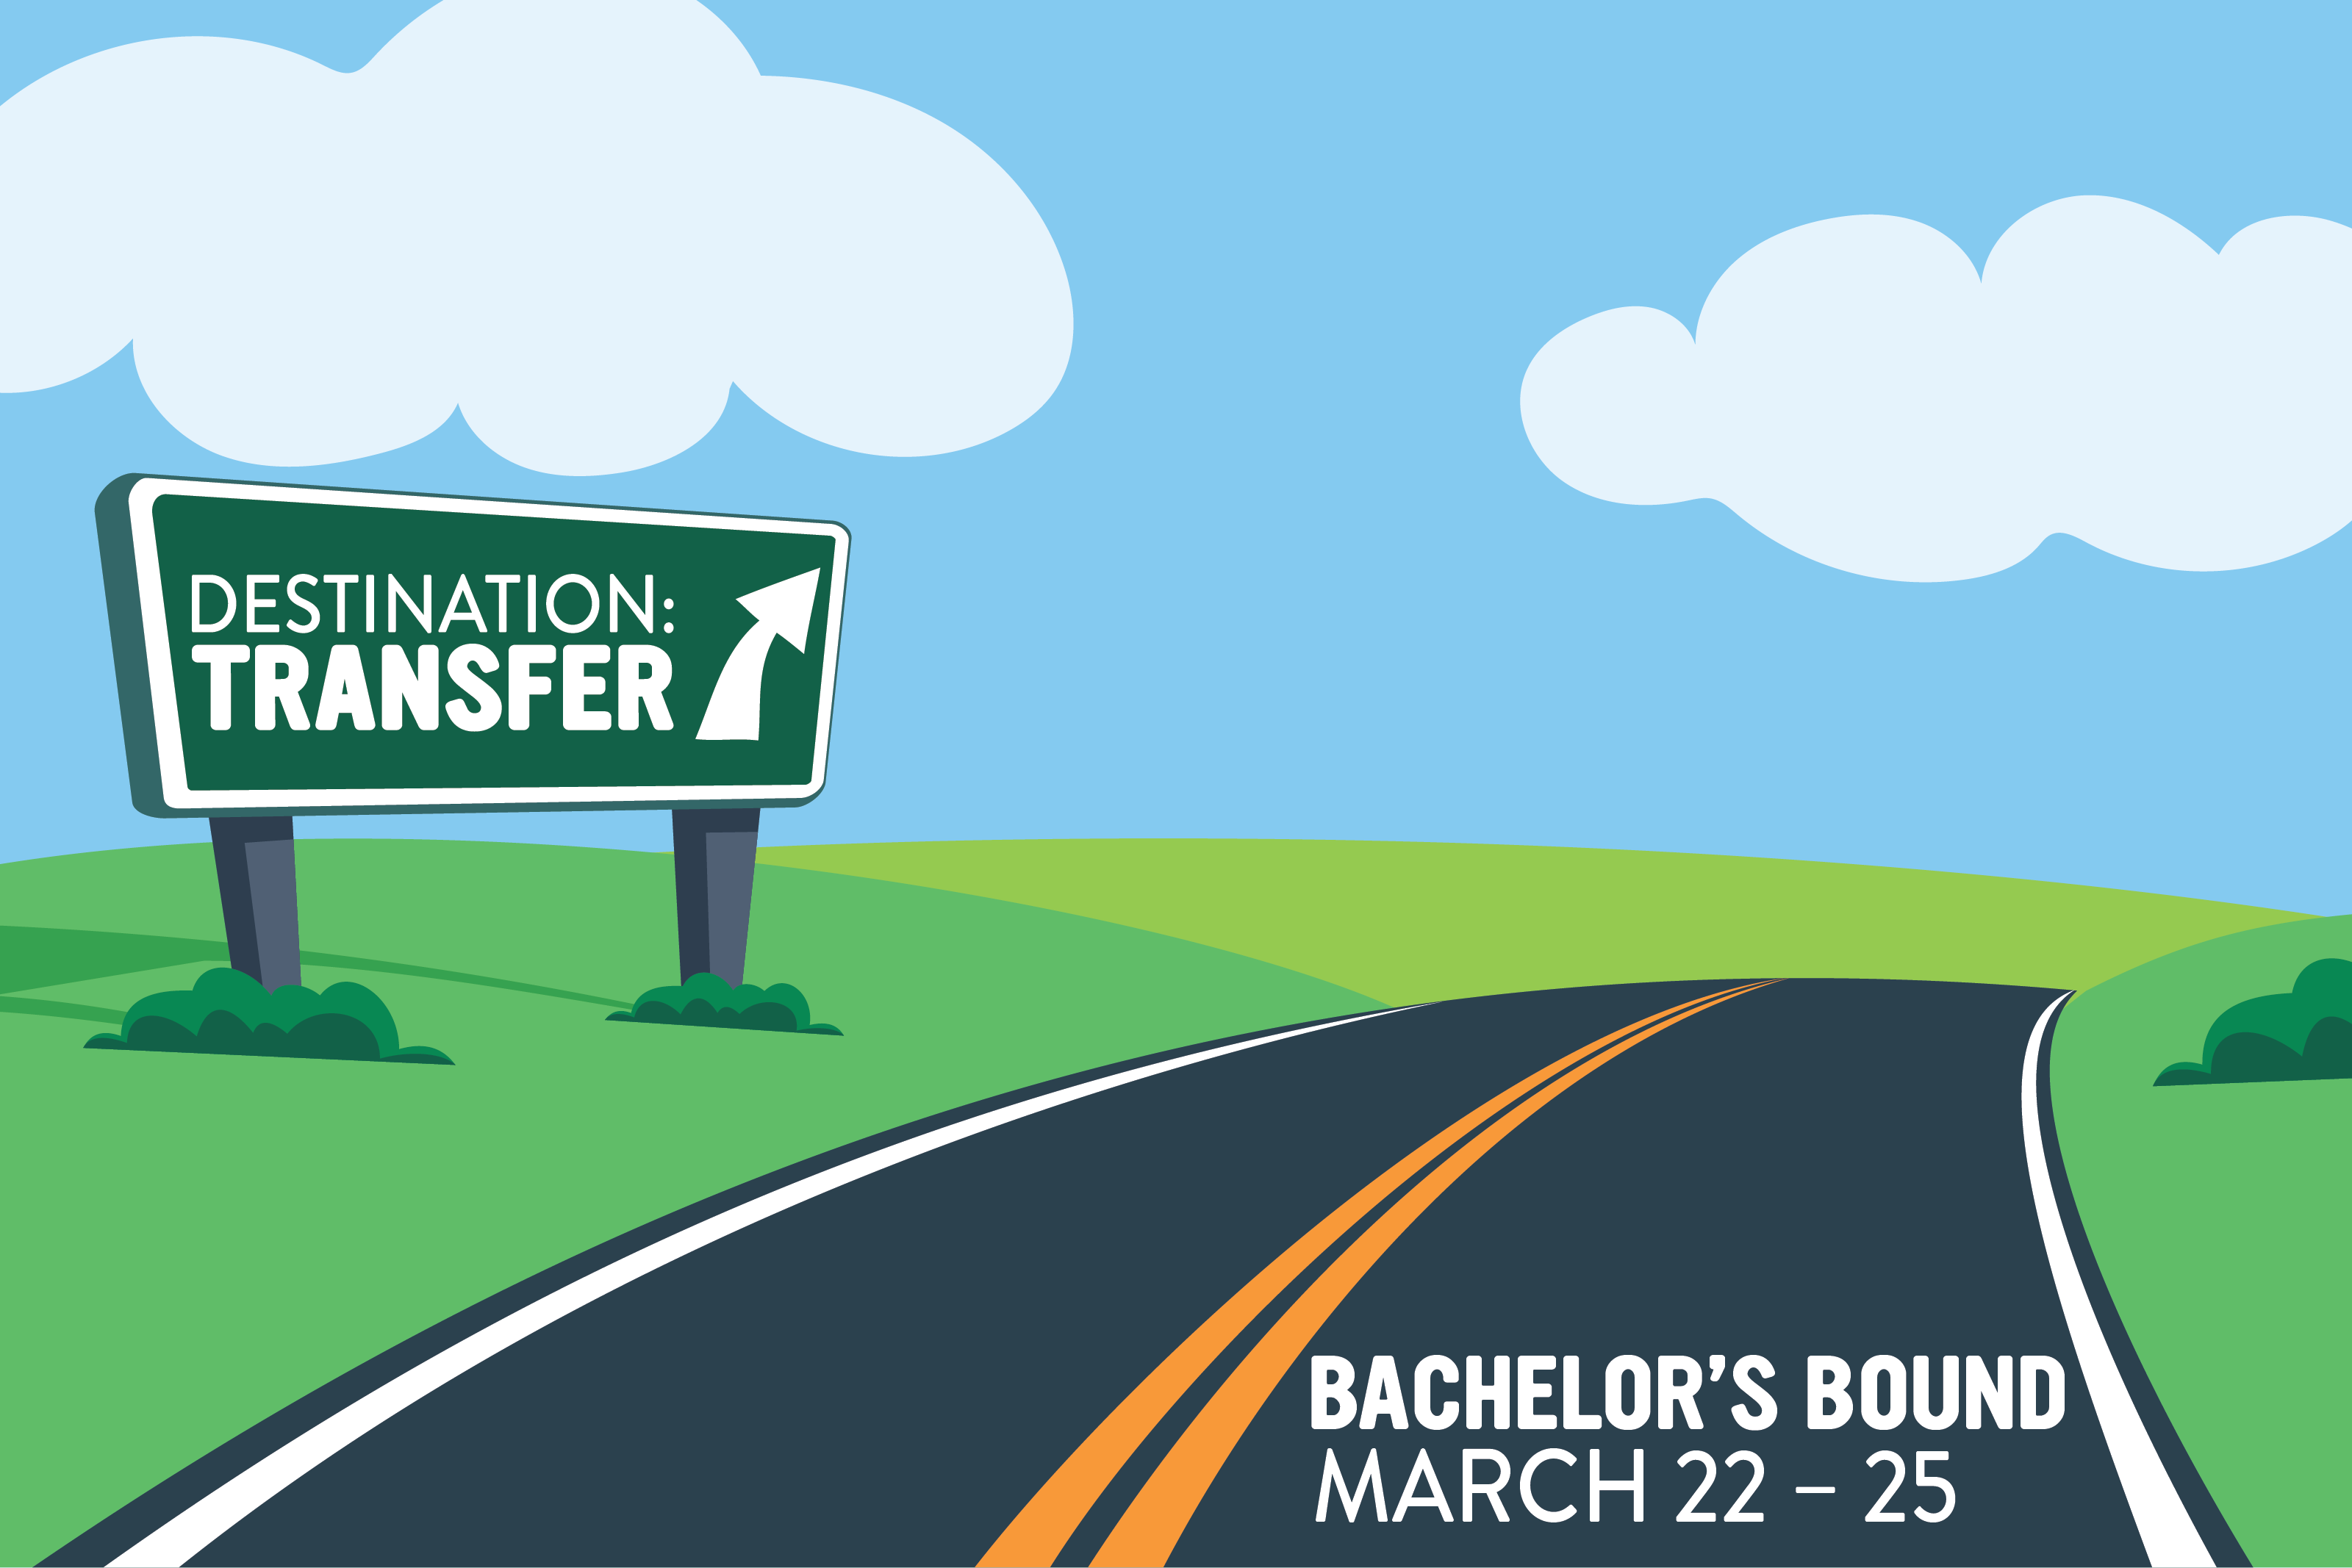 Destination: Transfer, Bachelor's Bound March 22-25th banner with road sign and road through empty hills